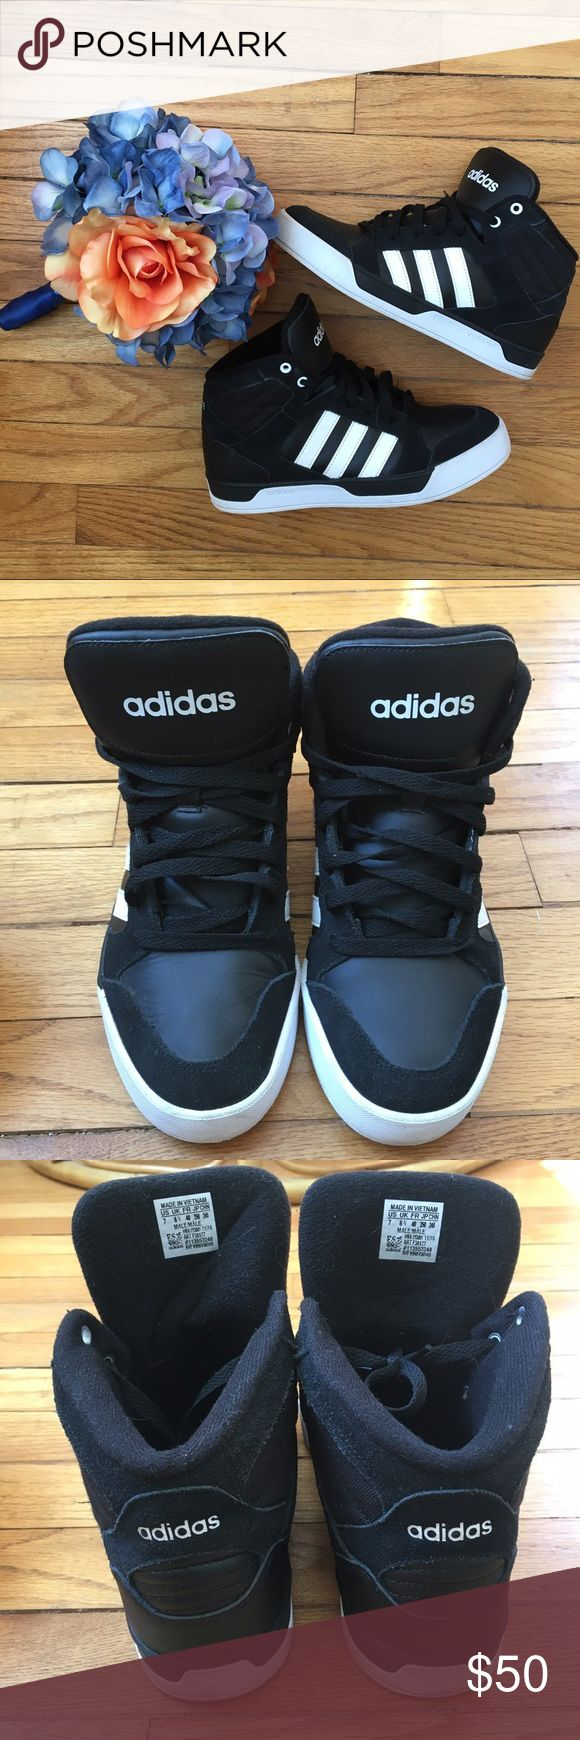 Adidas High Tops Awesome high tops.  Men's 7.  I'd say best for a women's 8 or maybe 7.5 too.  Good used condition. Adidas Shoes Sneakers